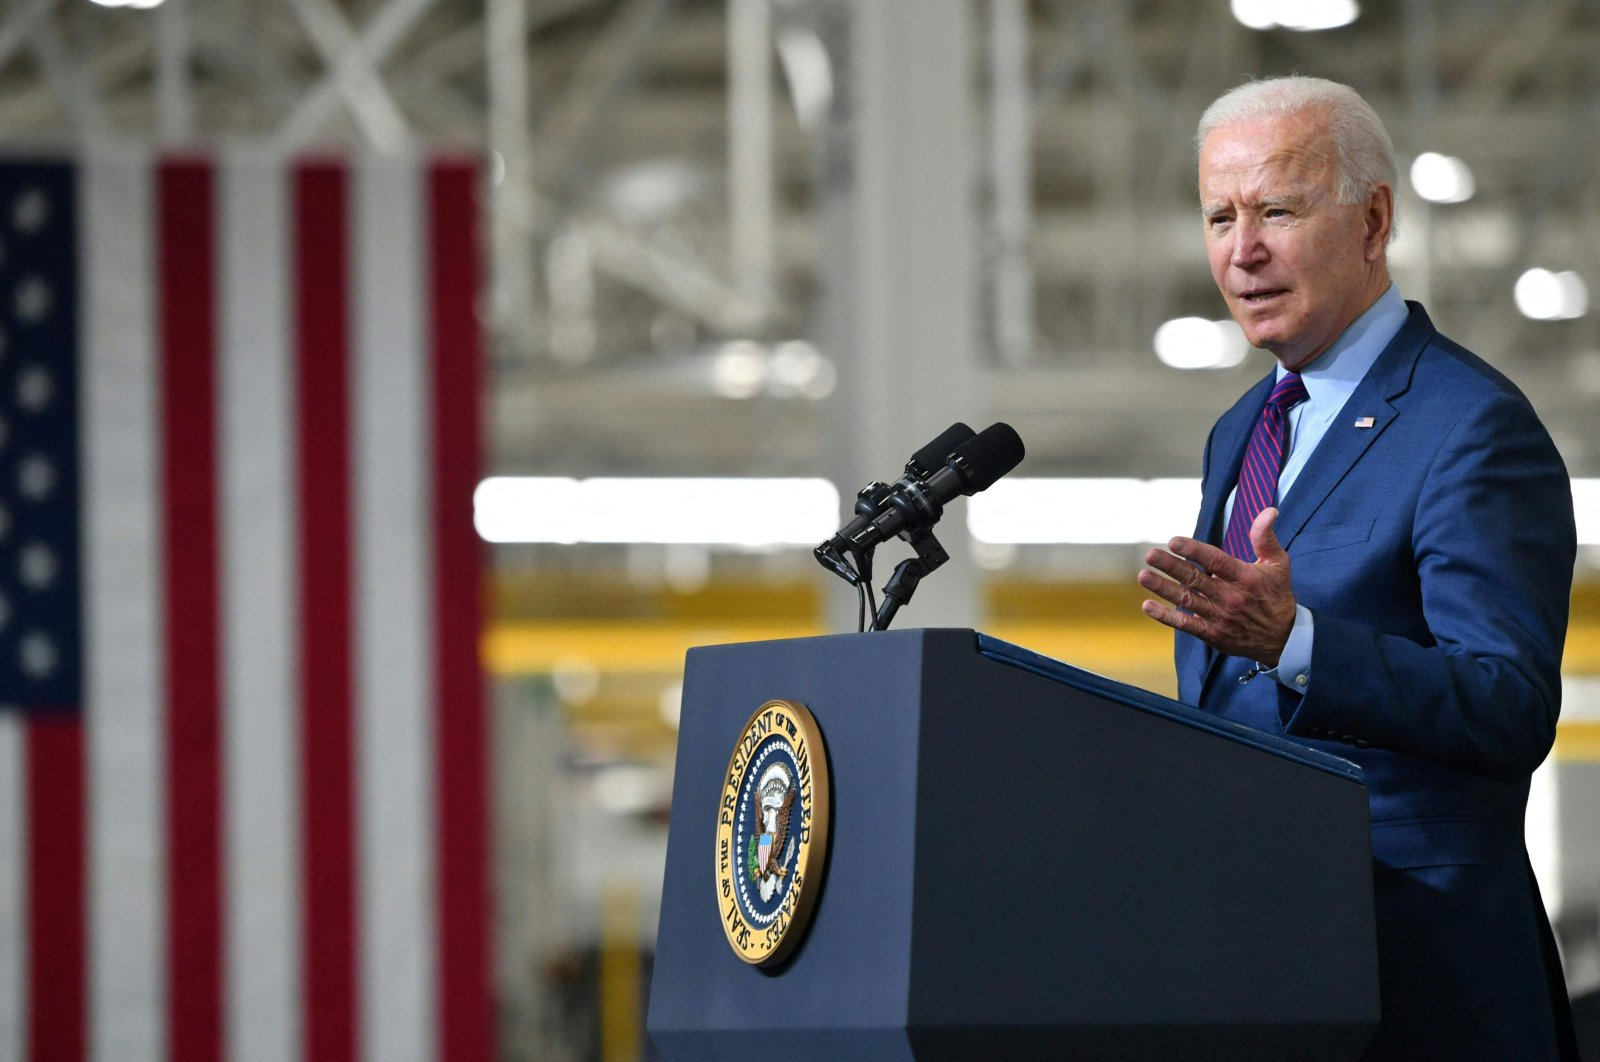 U.S. President Joe Biden delivers remarks at the Ford Rouge Electric Vehicle Center, in Dearborn, Michigan, U.S., May 18, 2021. (AFP Photo)